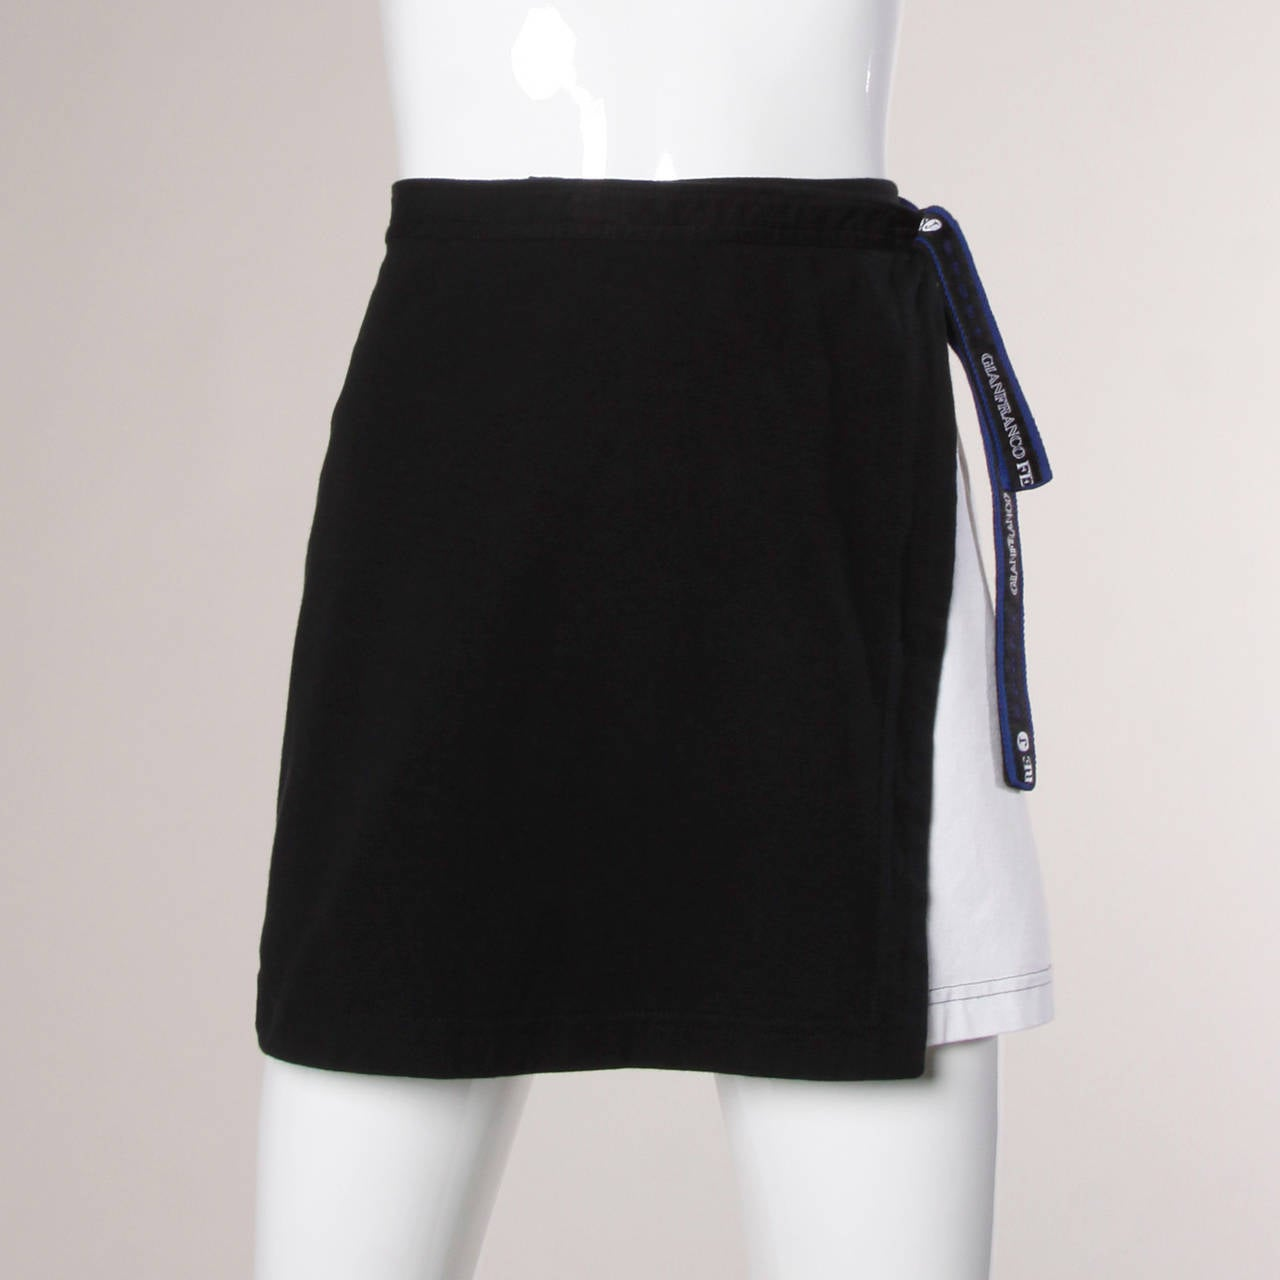 Gianfranco Ferre Vintage Sporty Color Block 2-Piece Skirt + Top Ensemble 8